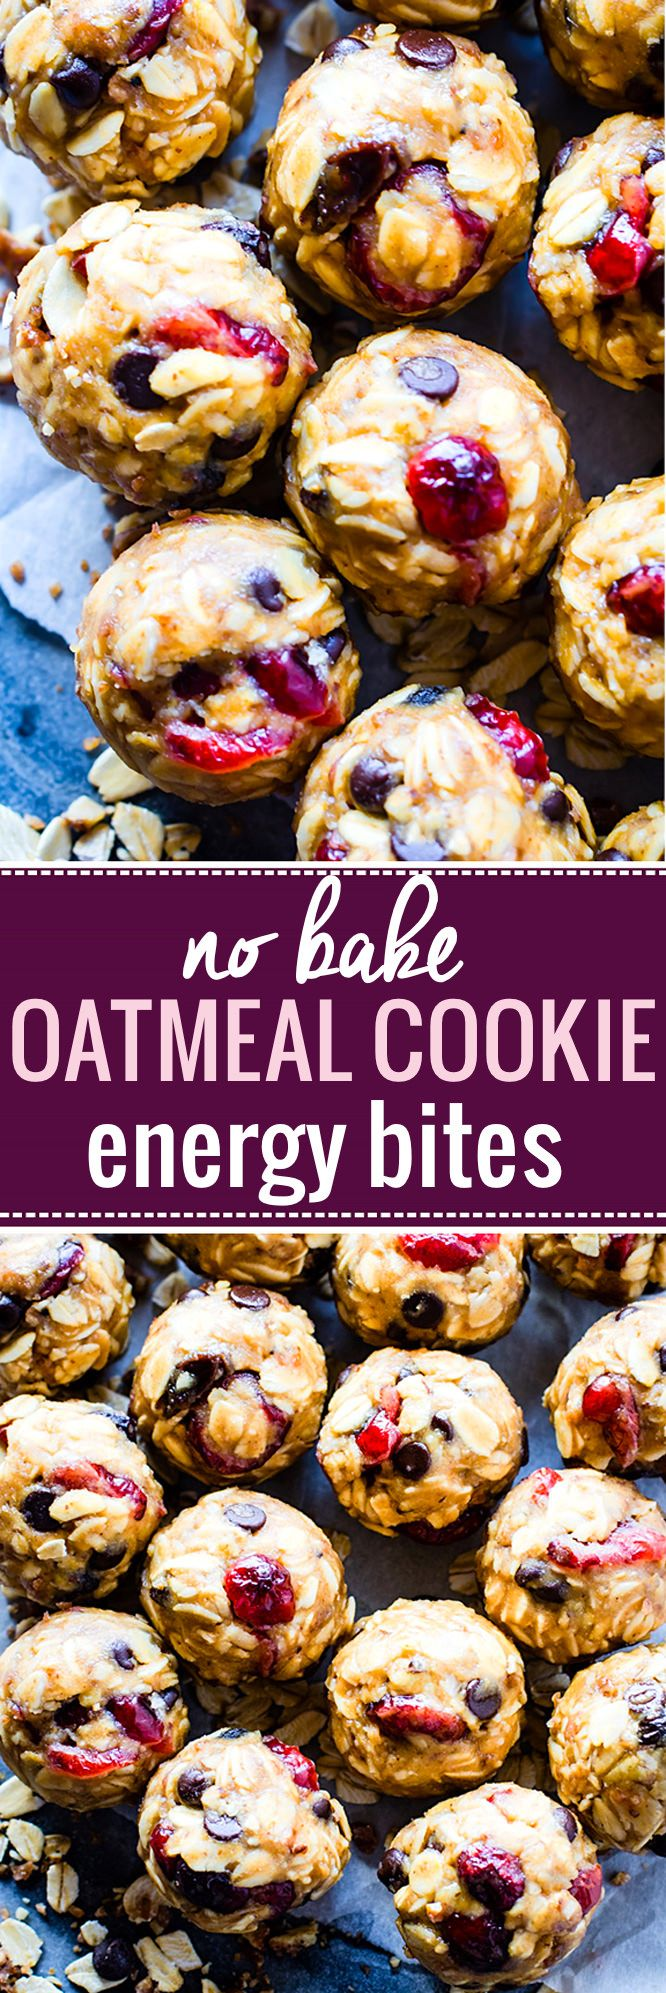 No Bake Loaded Oatmeal Cookie Energy Bites {Gluten Free}. All clean eating ingredients are used for this healthy energy bite recipe. Pin now to make this healthy snack later.